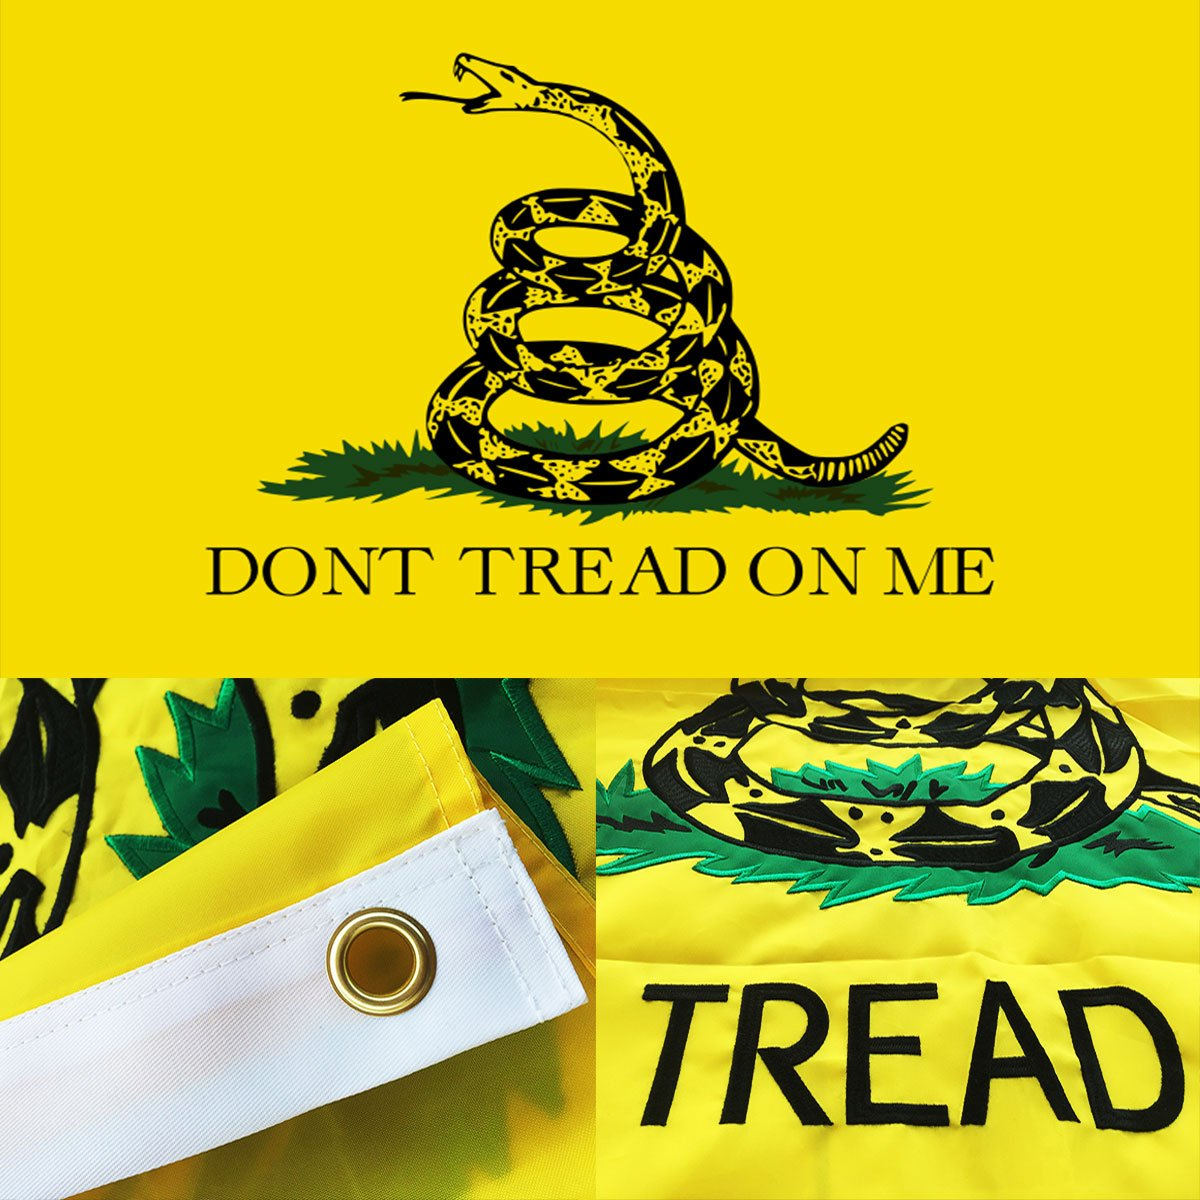 Winbee Embroidered Gadsden Don't Tread On Me Flag 3x5 Ft with Long Lasting Nylon, Double Sewn Stripes and Brass Grommets, UV Protected, Best 3 by 5 American Tea Party FLA